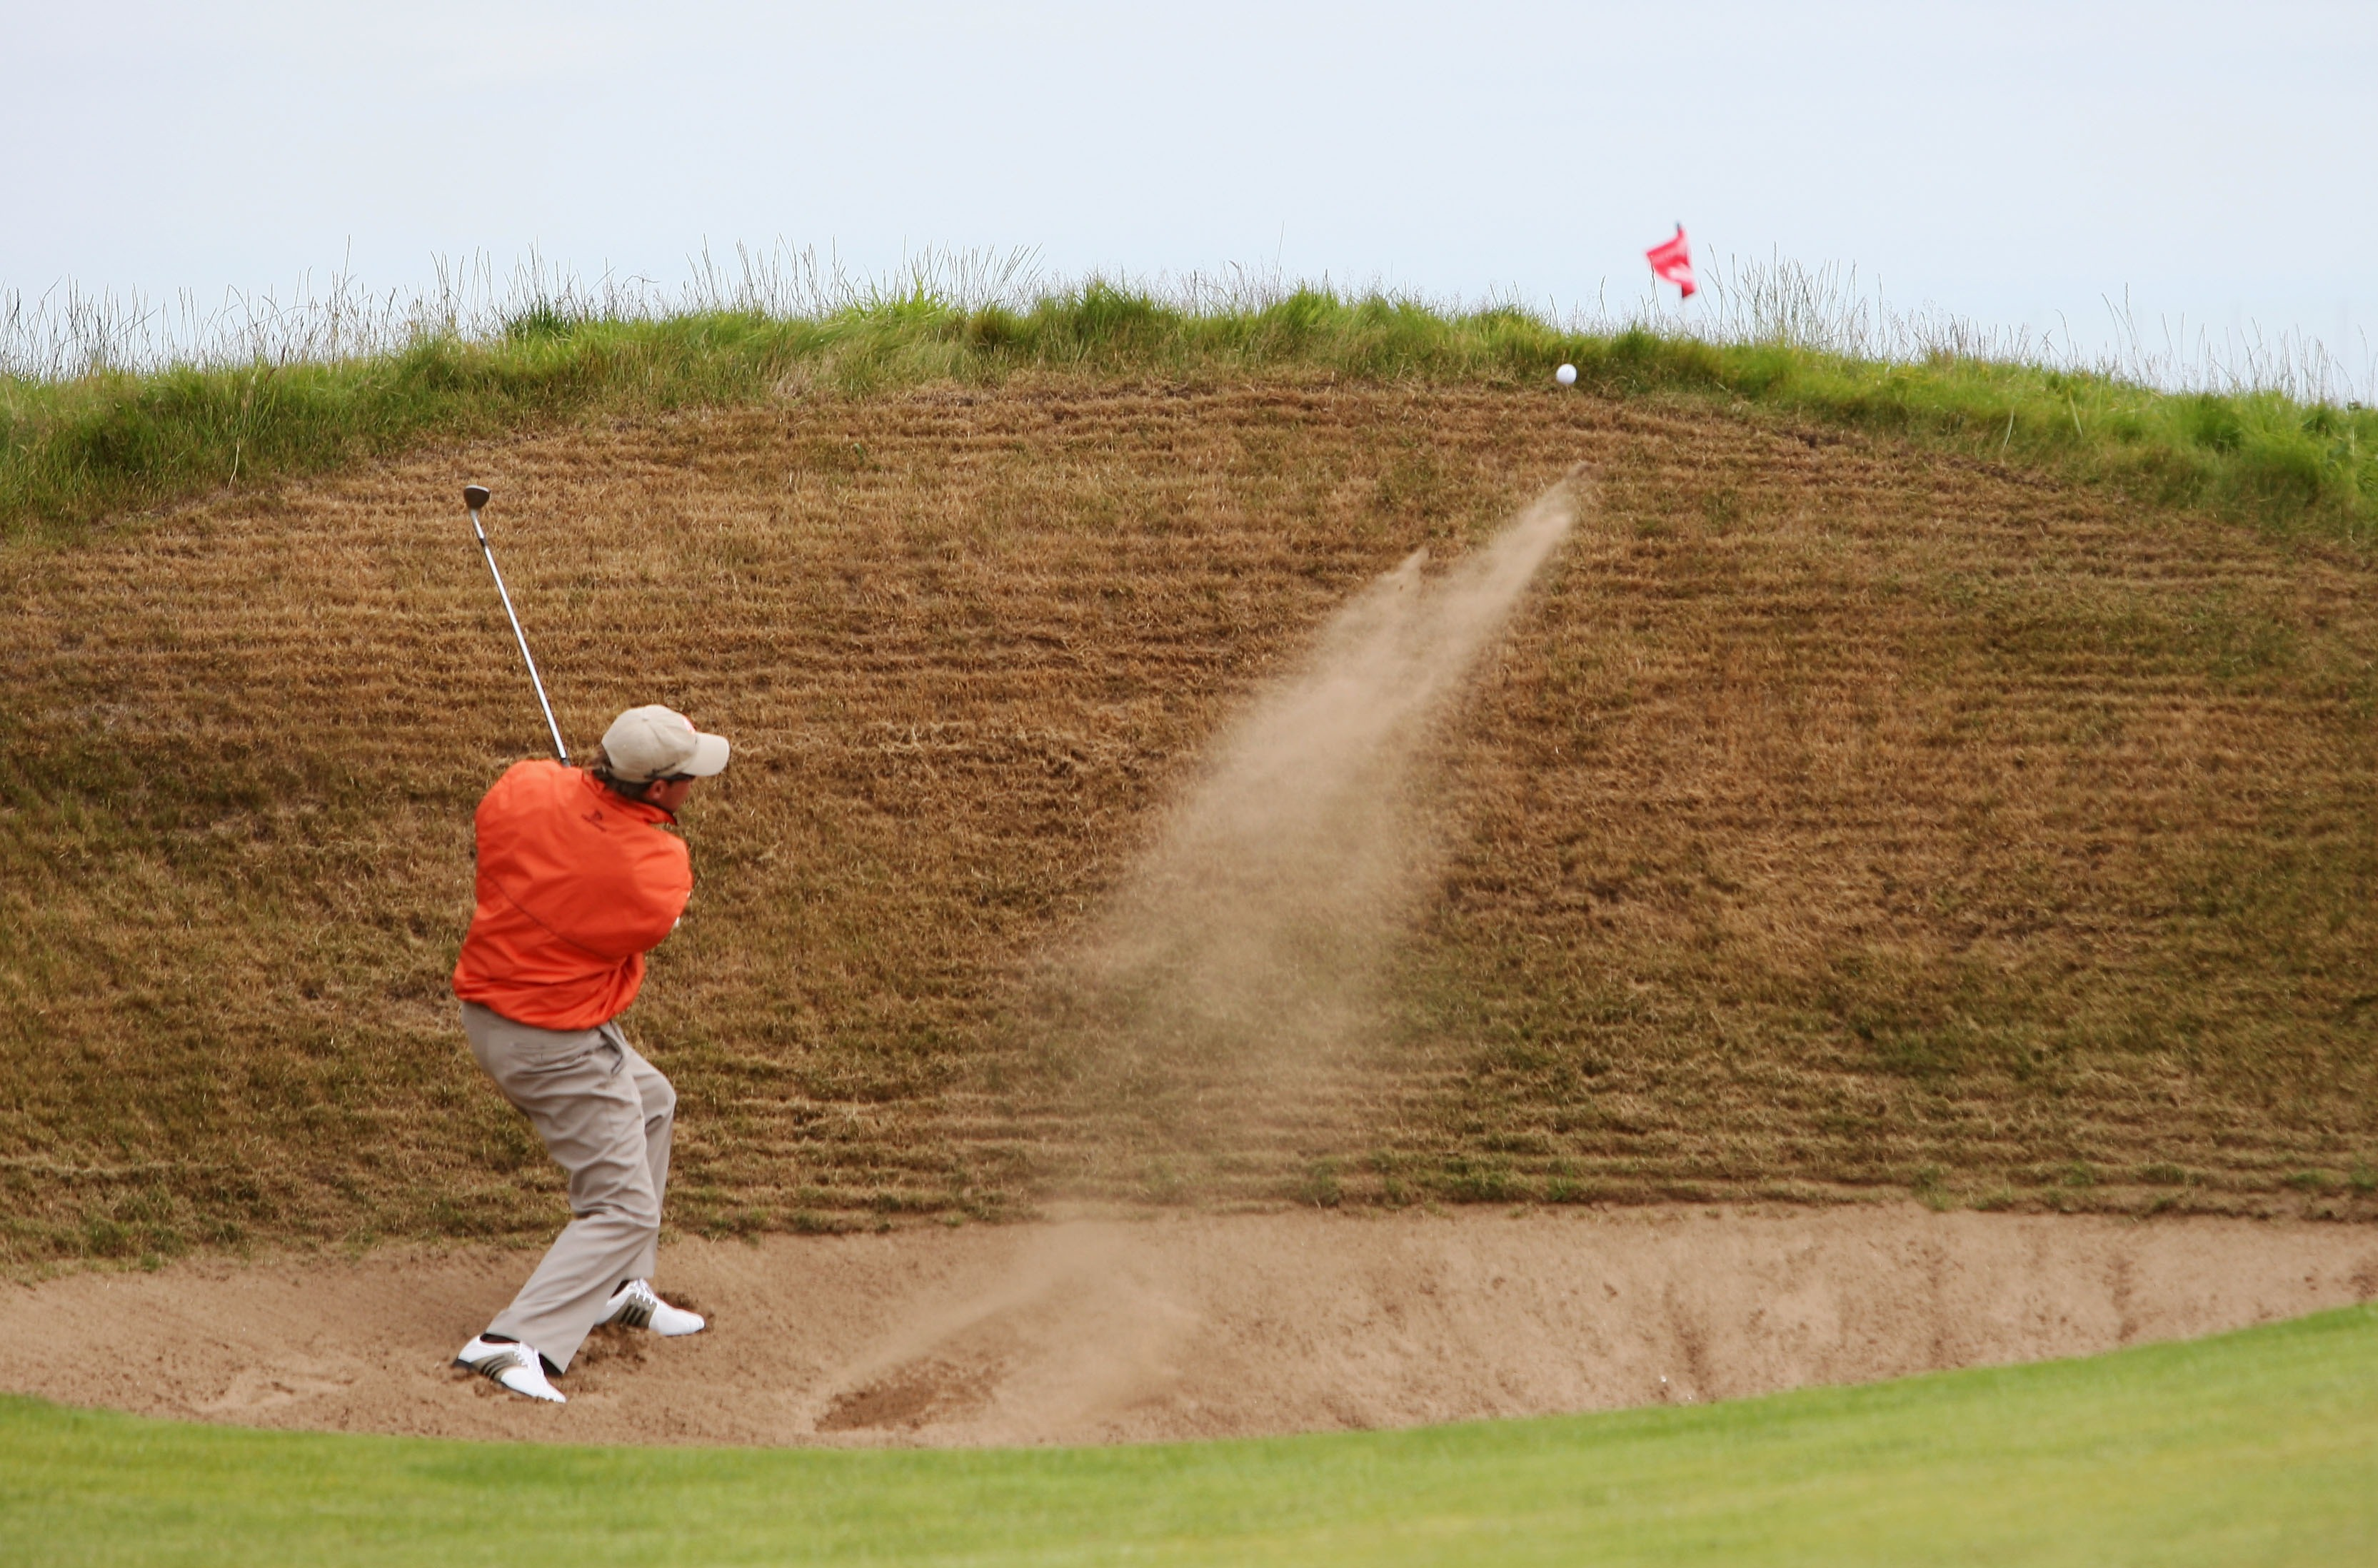 CARNOUSTIE, UNITED KINGDOM - JULY 20: Brian Davis of England plays a bunker shot on the 14th hole during the second round of The 136th Open Championship at the Carnoustie Golf Club on July 20, 2007 in Carnoustie, Scotland. (Photo by Ross Kinnaird/Getty Images)